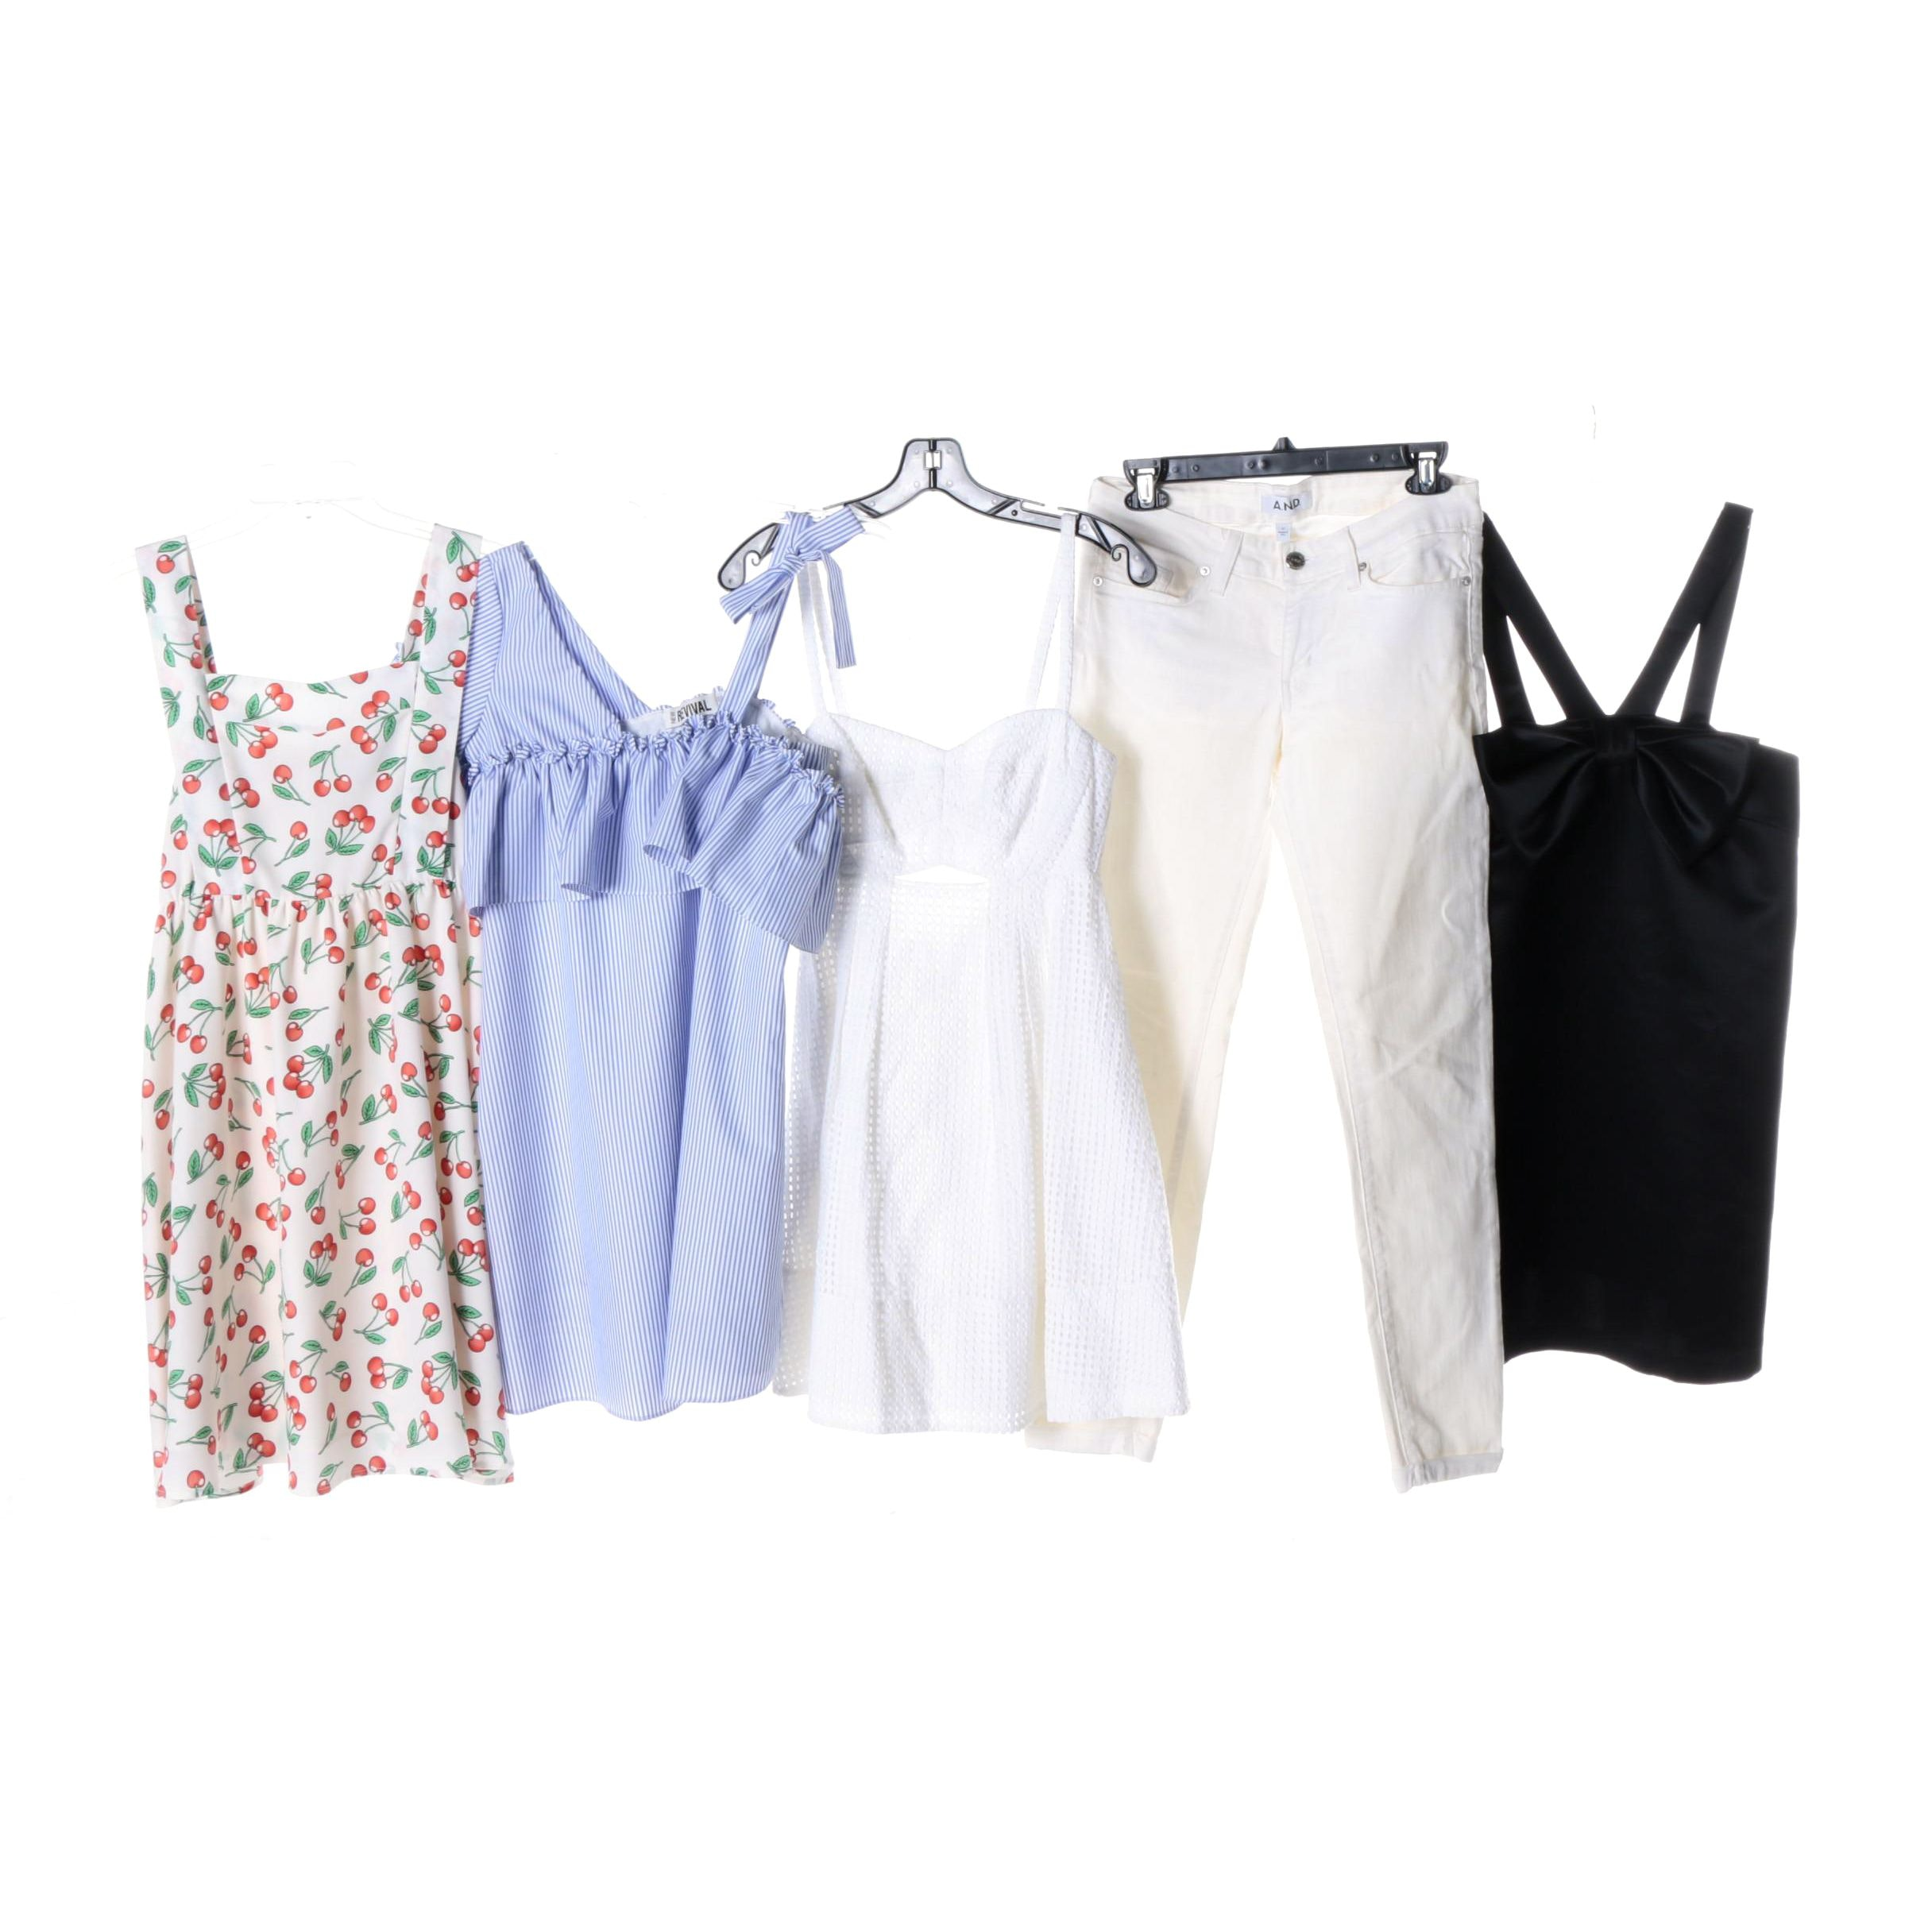 Collection of Women's Dresses and Jeans